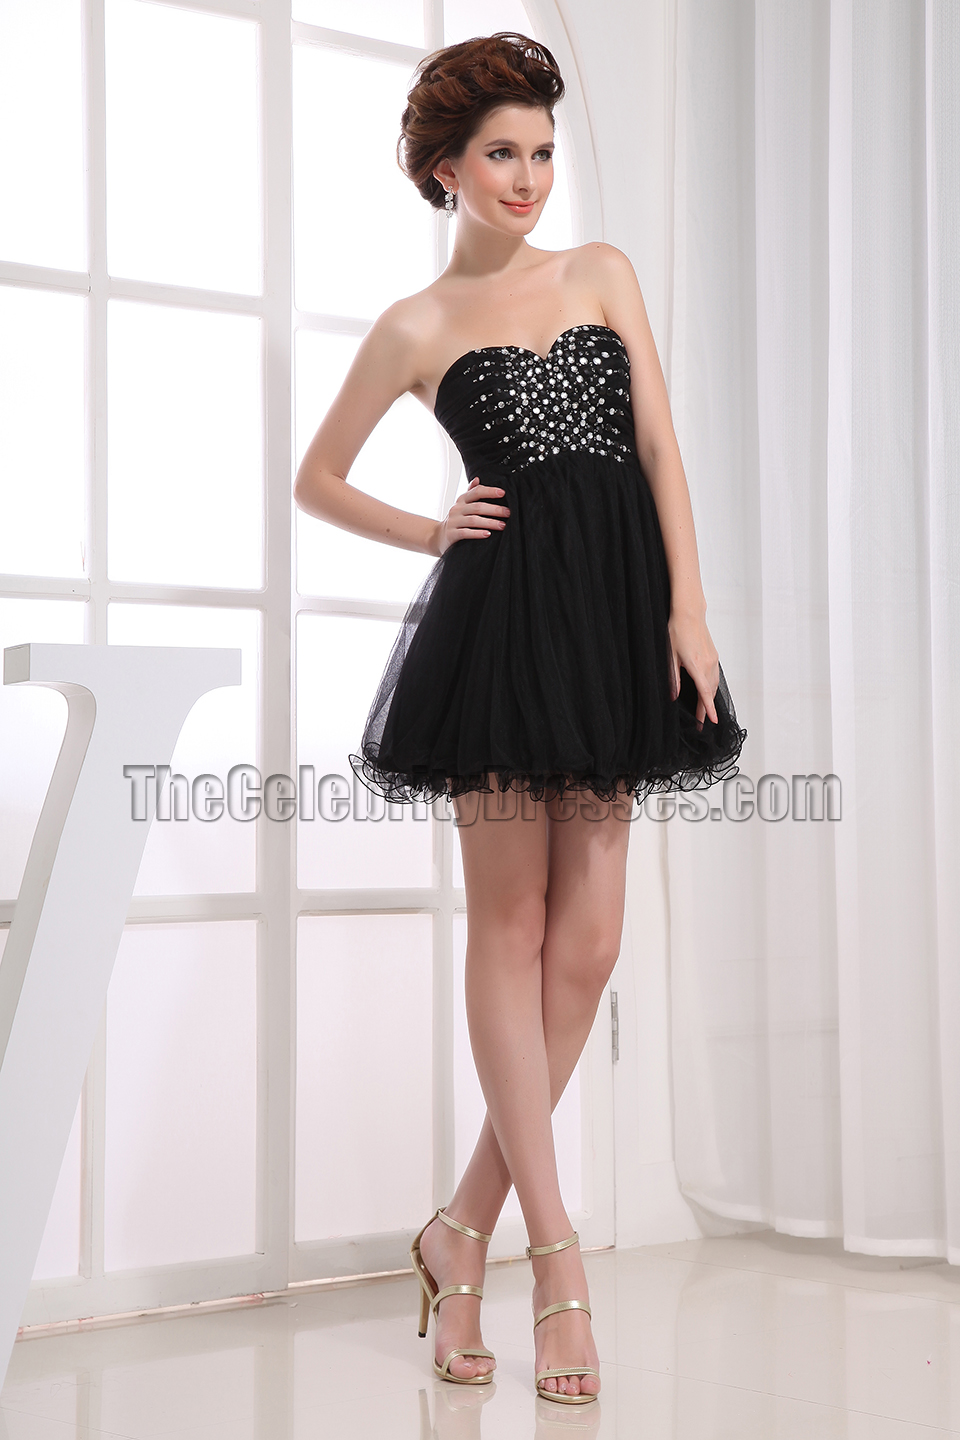 Black dress mini - New Style Cute Beaded Little Black Dress Mini Party Dresses Thecelebritydresses